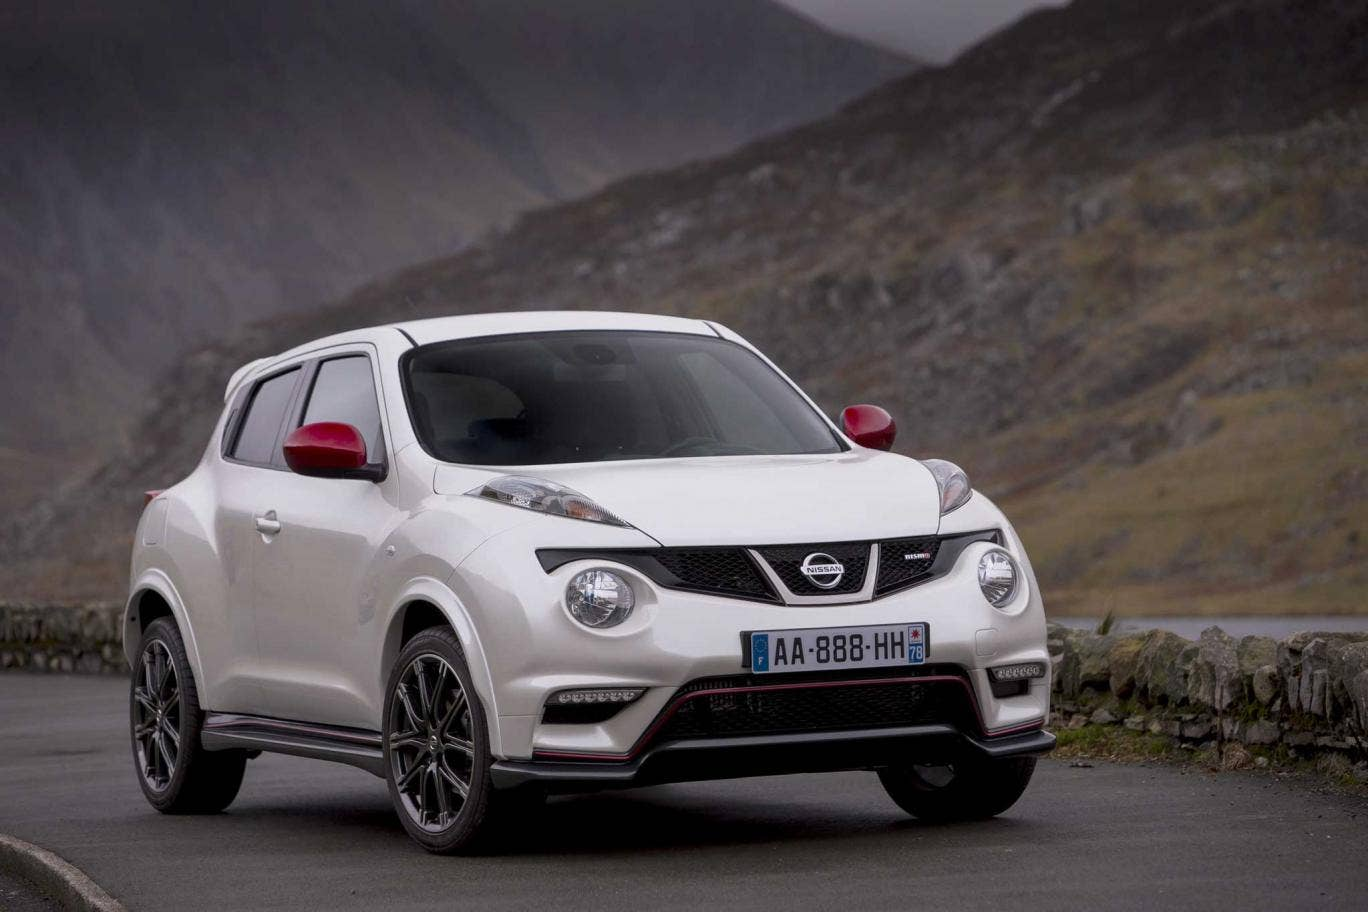 The Nismo comes across as a more complete and honed machine than a similarly equipped Juke 1.6 turbo, both to look at and to drive